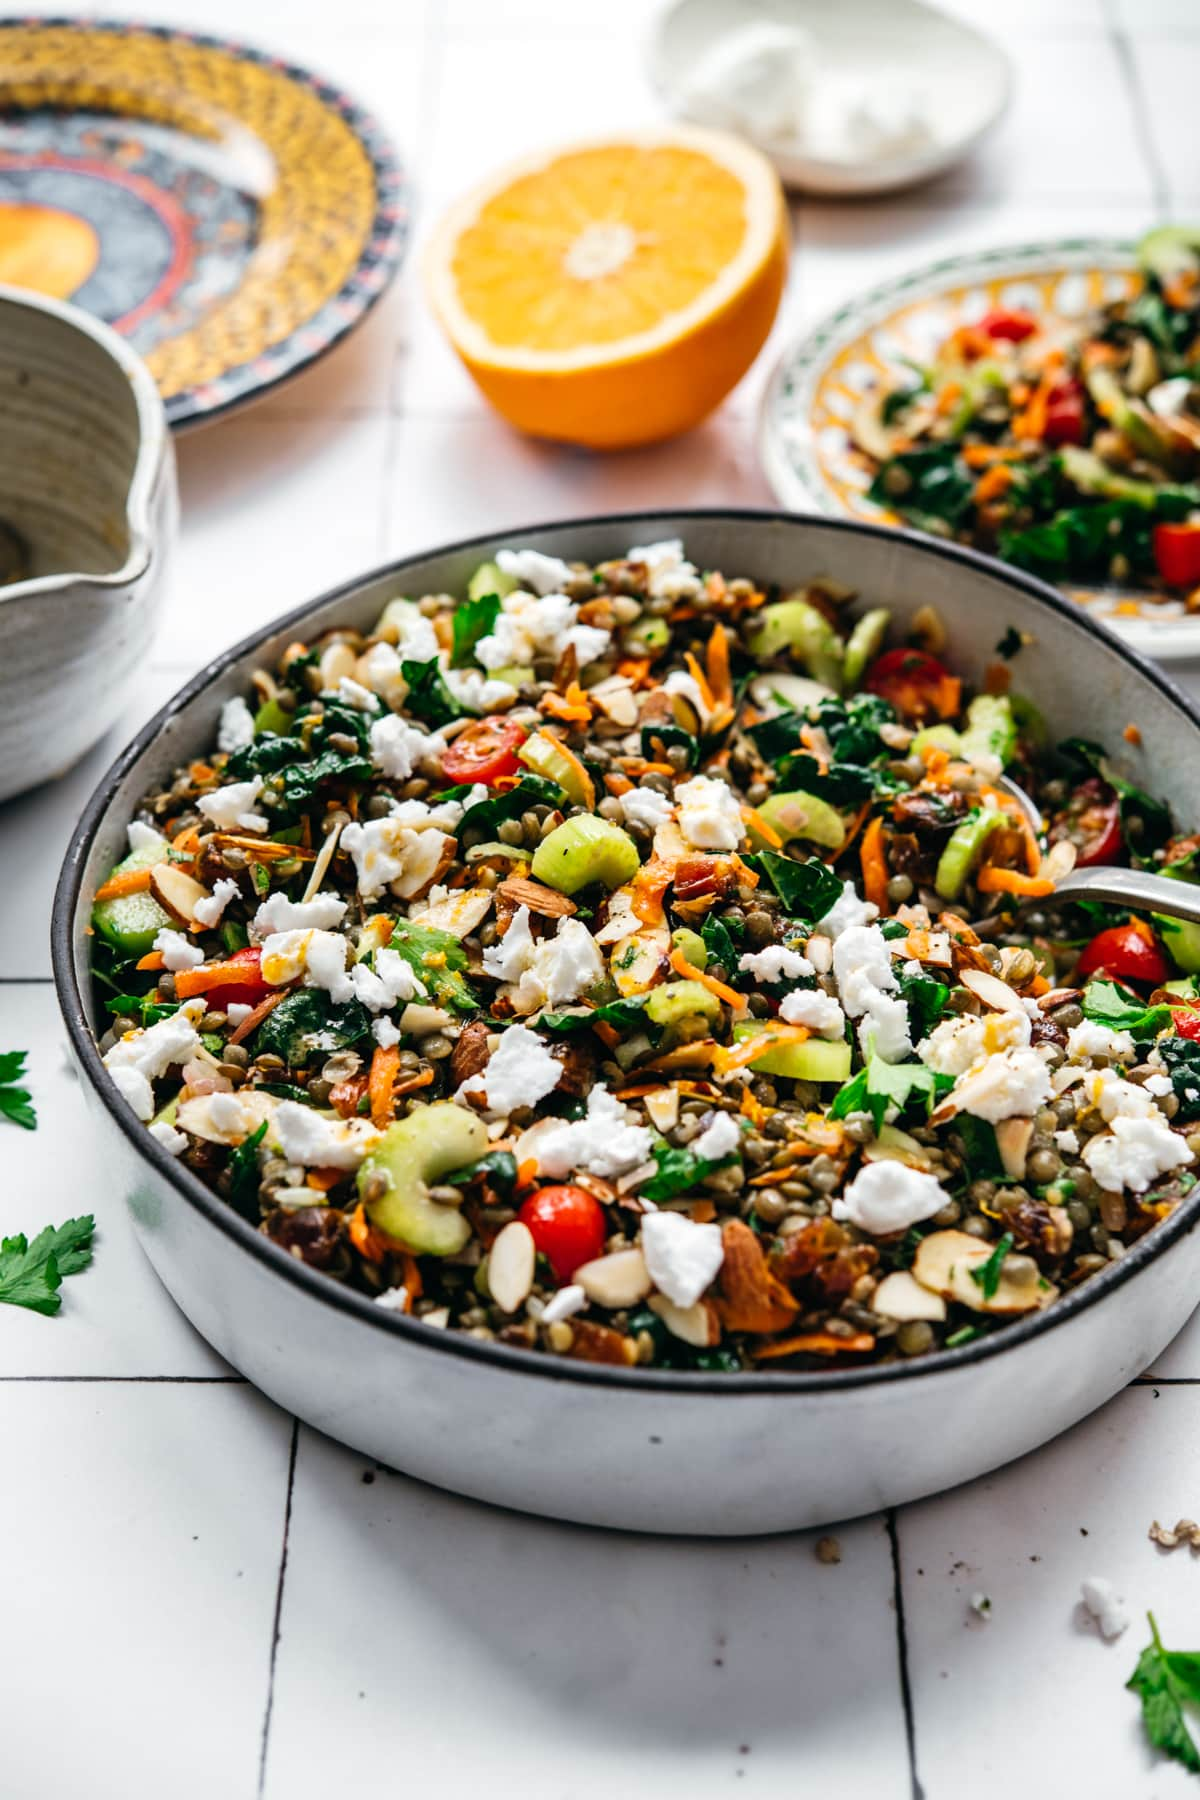 side view of vegan french lentil salad in a large bowl with serving spoon on white tile background.